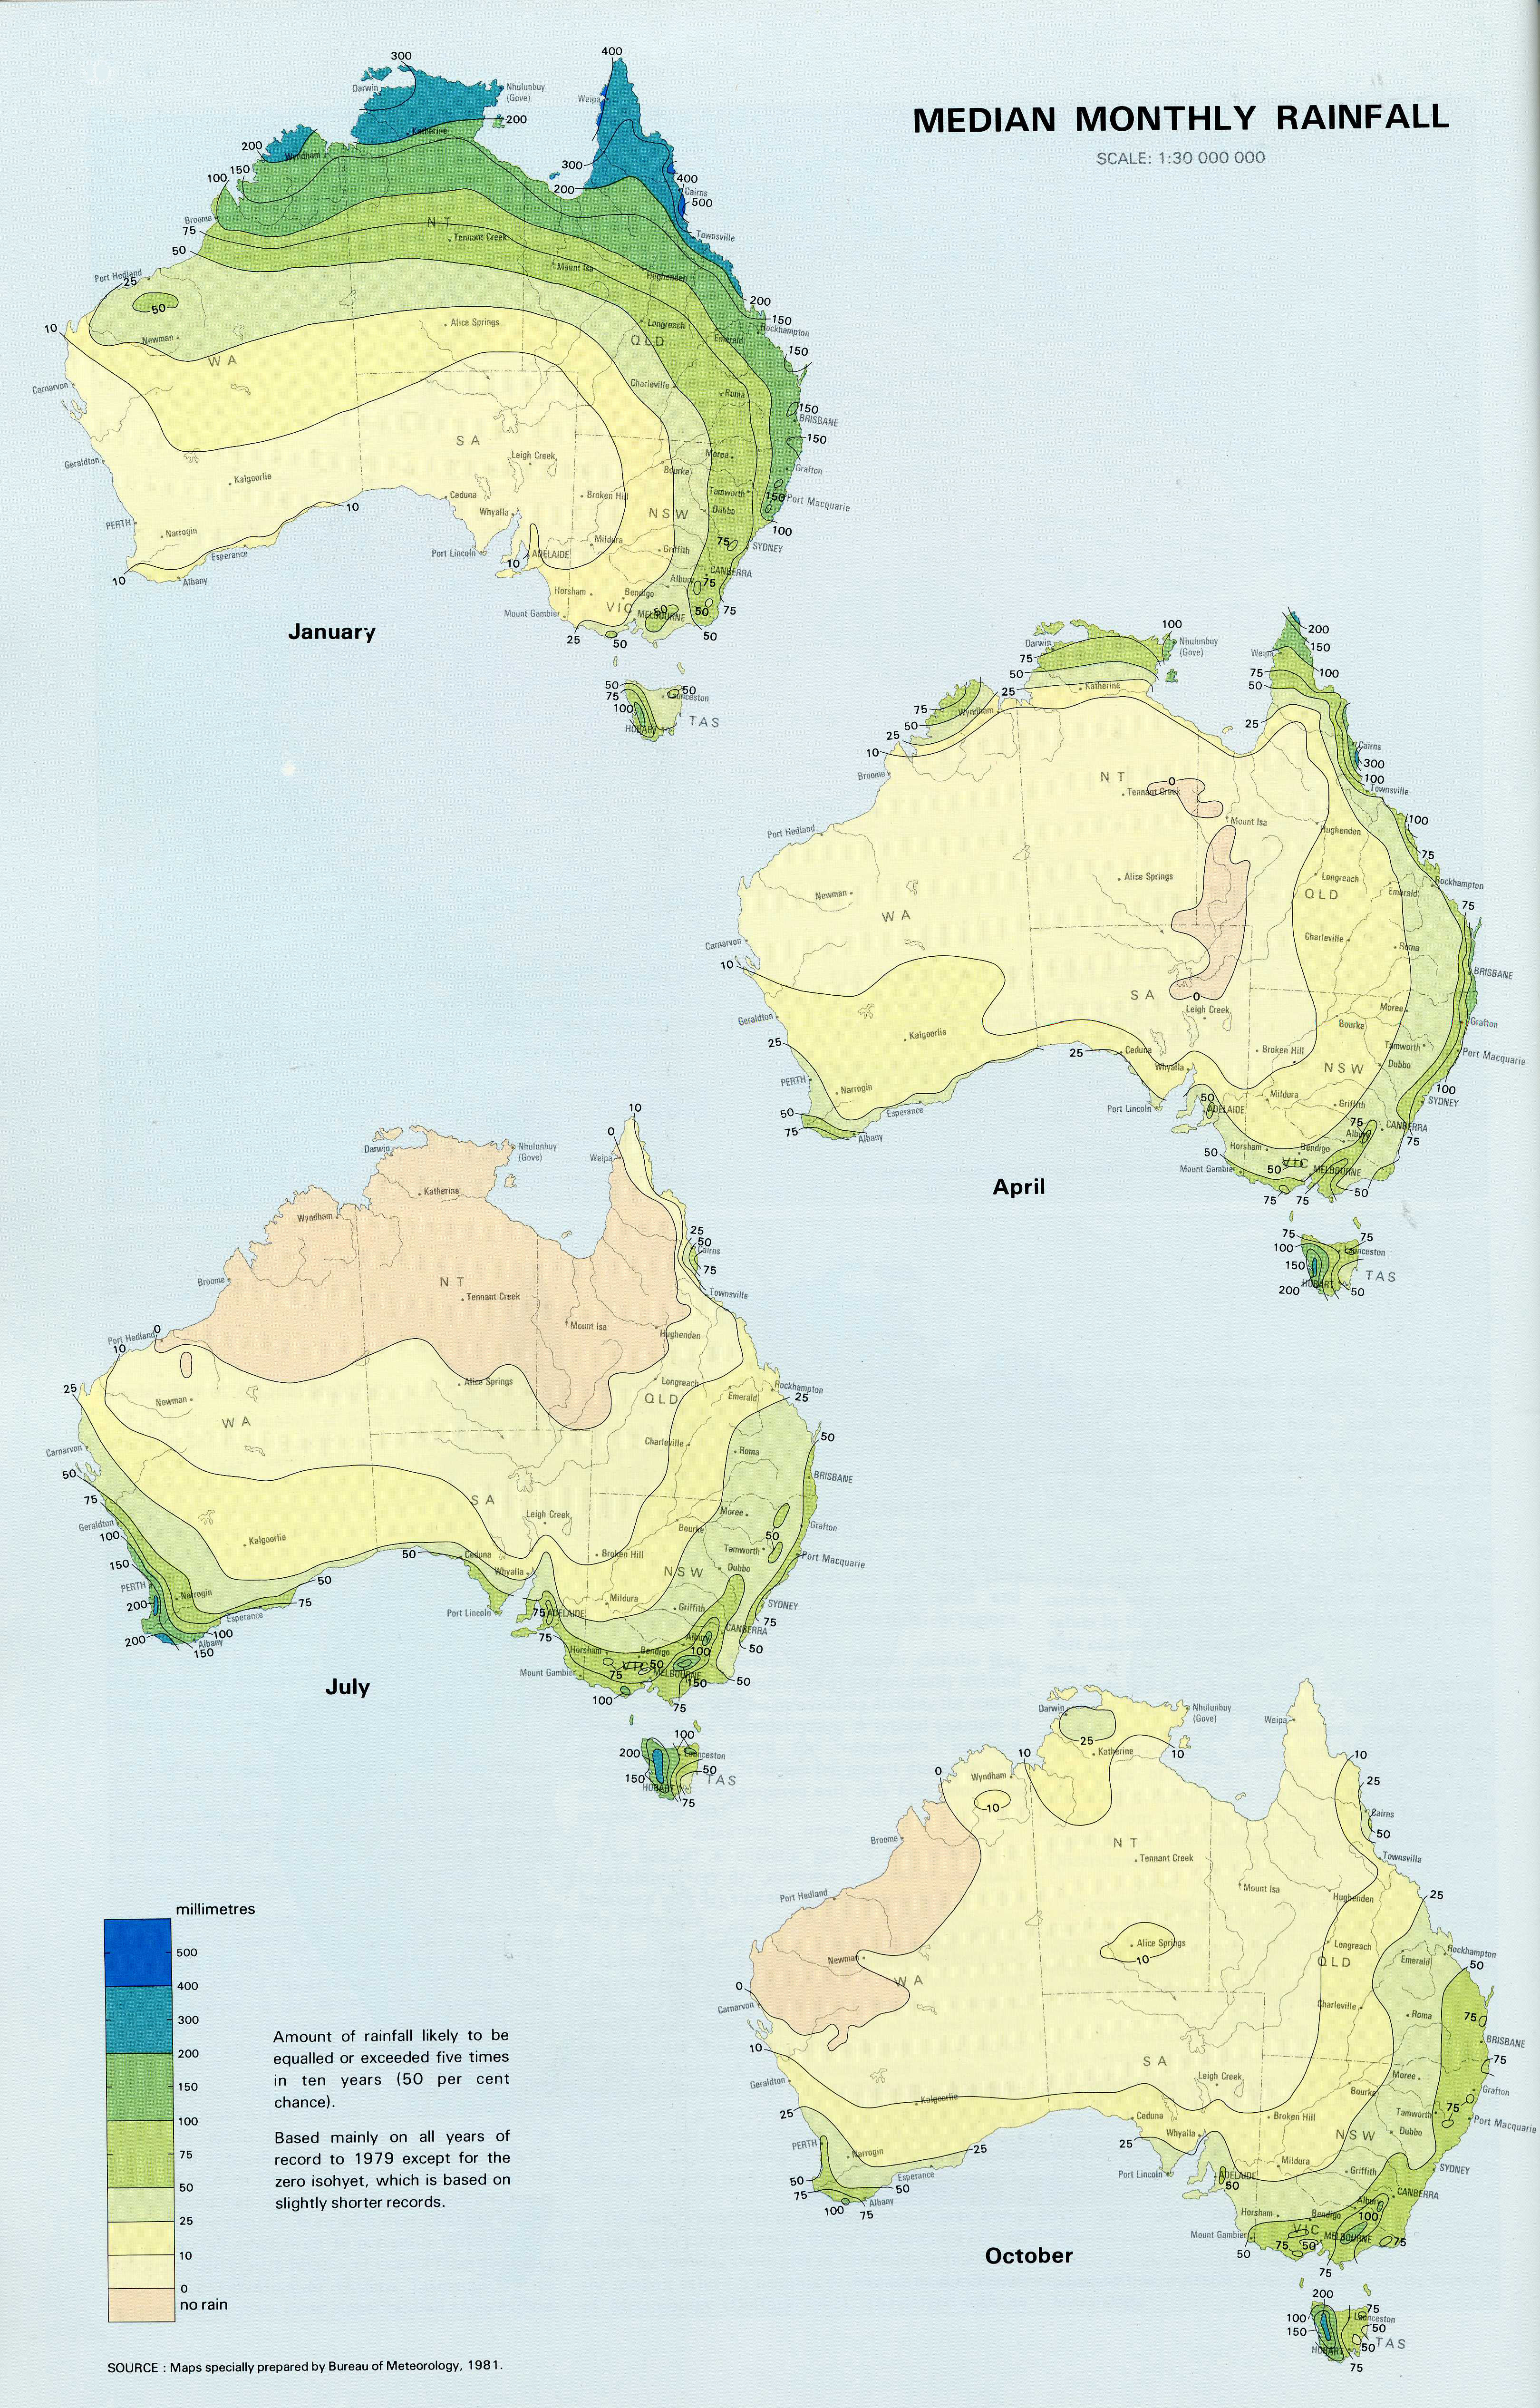 Time series map used for rainfall, shows 4 different maps of Australia, showing different rainfall for different months.